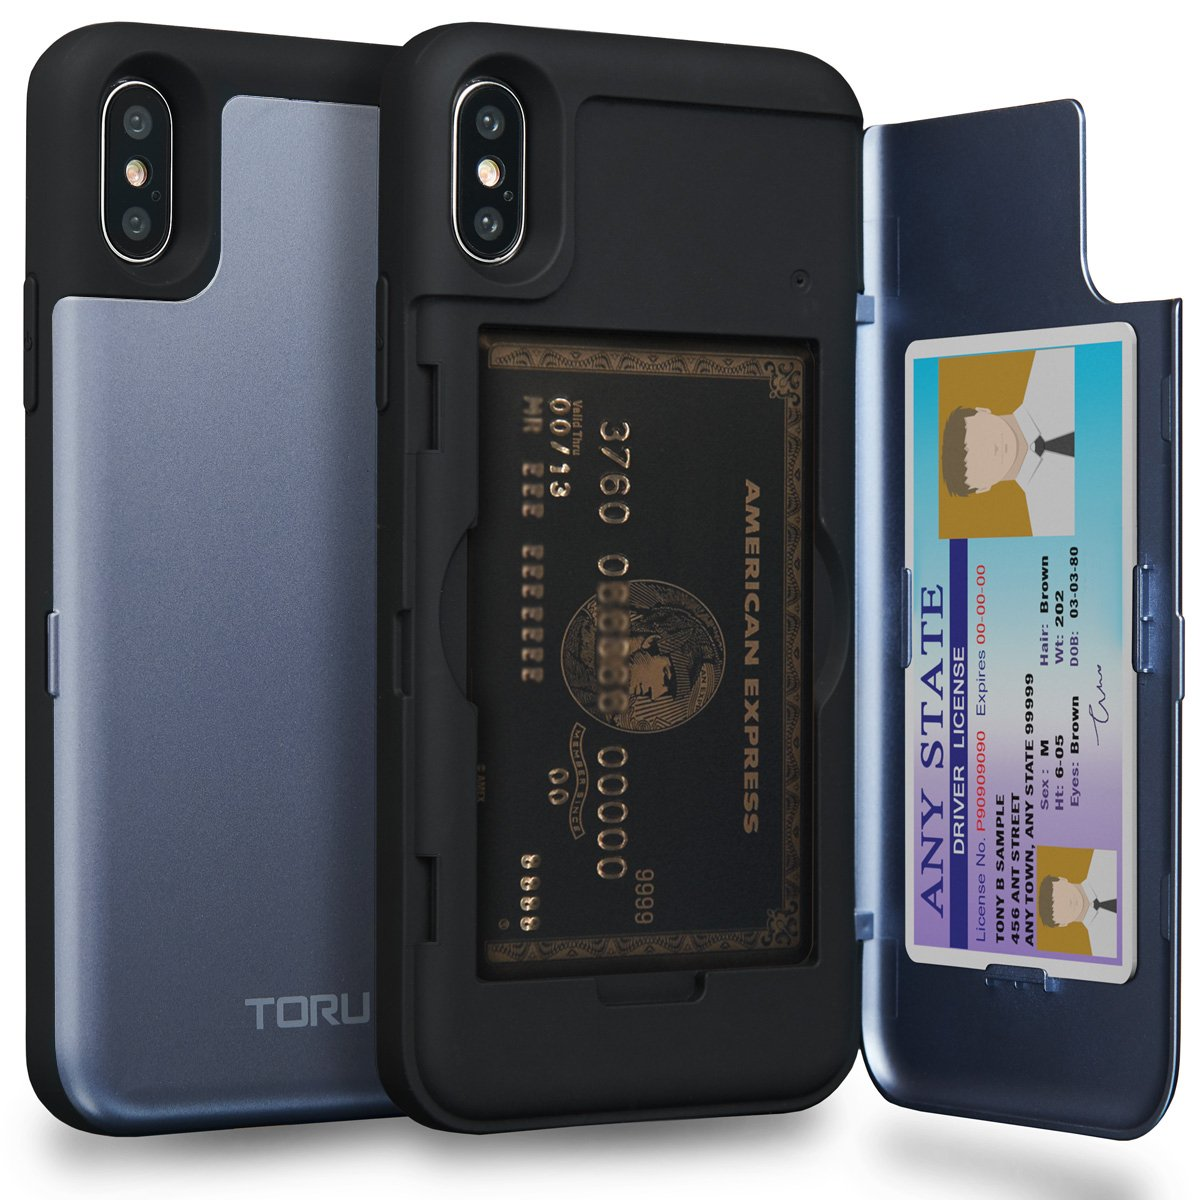 TORU CX PRO iPhone XS Wallet Case Pattern with Hidden ID Slot Credit Card Holder Hard Cover & Mirror for Apple iPhone XS (2018) / iPhone X (2017) - Black Marble iMODE Korea Inc 11XTCXP-MB